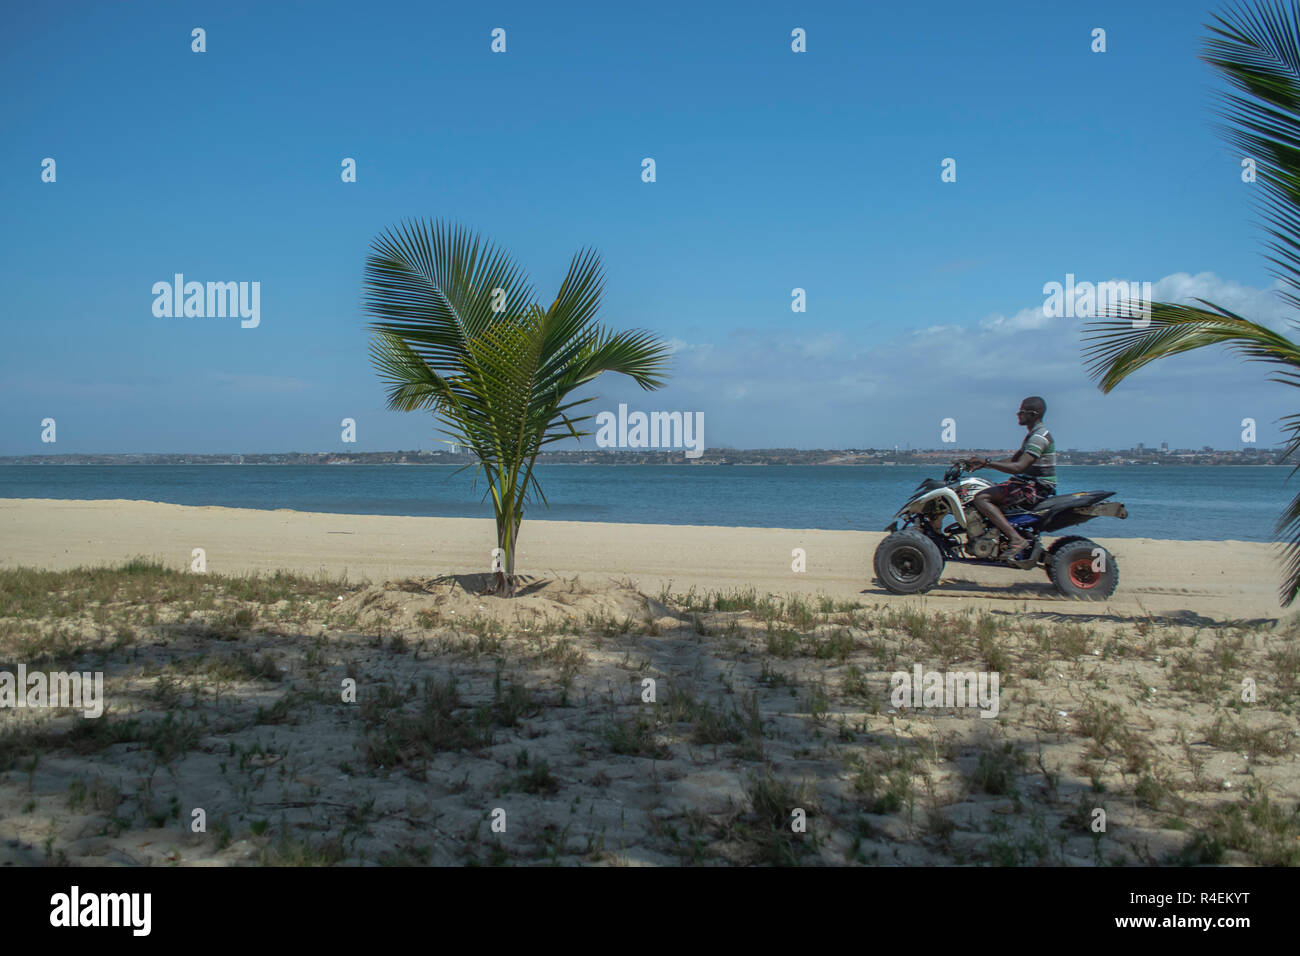 Luanda/Angola - 11 11 2018: View of beach with palm tree and man riding quad bike, ocean and Luanda as background, Mussulo island, Angola - Stock Image